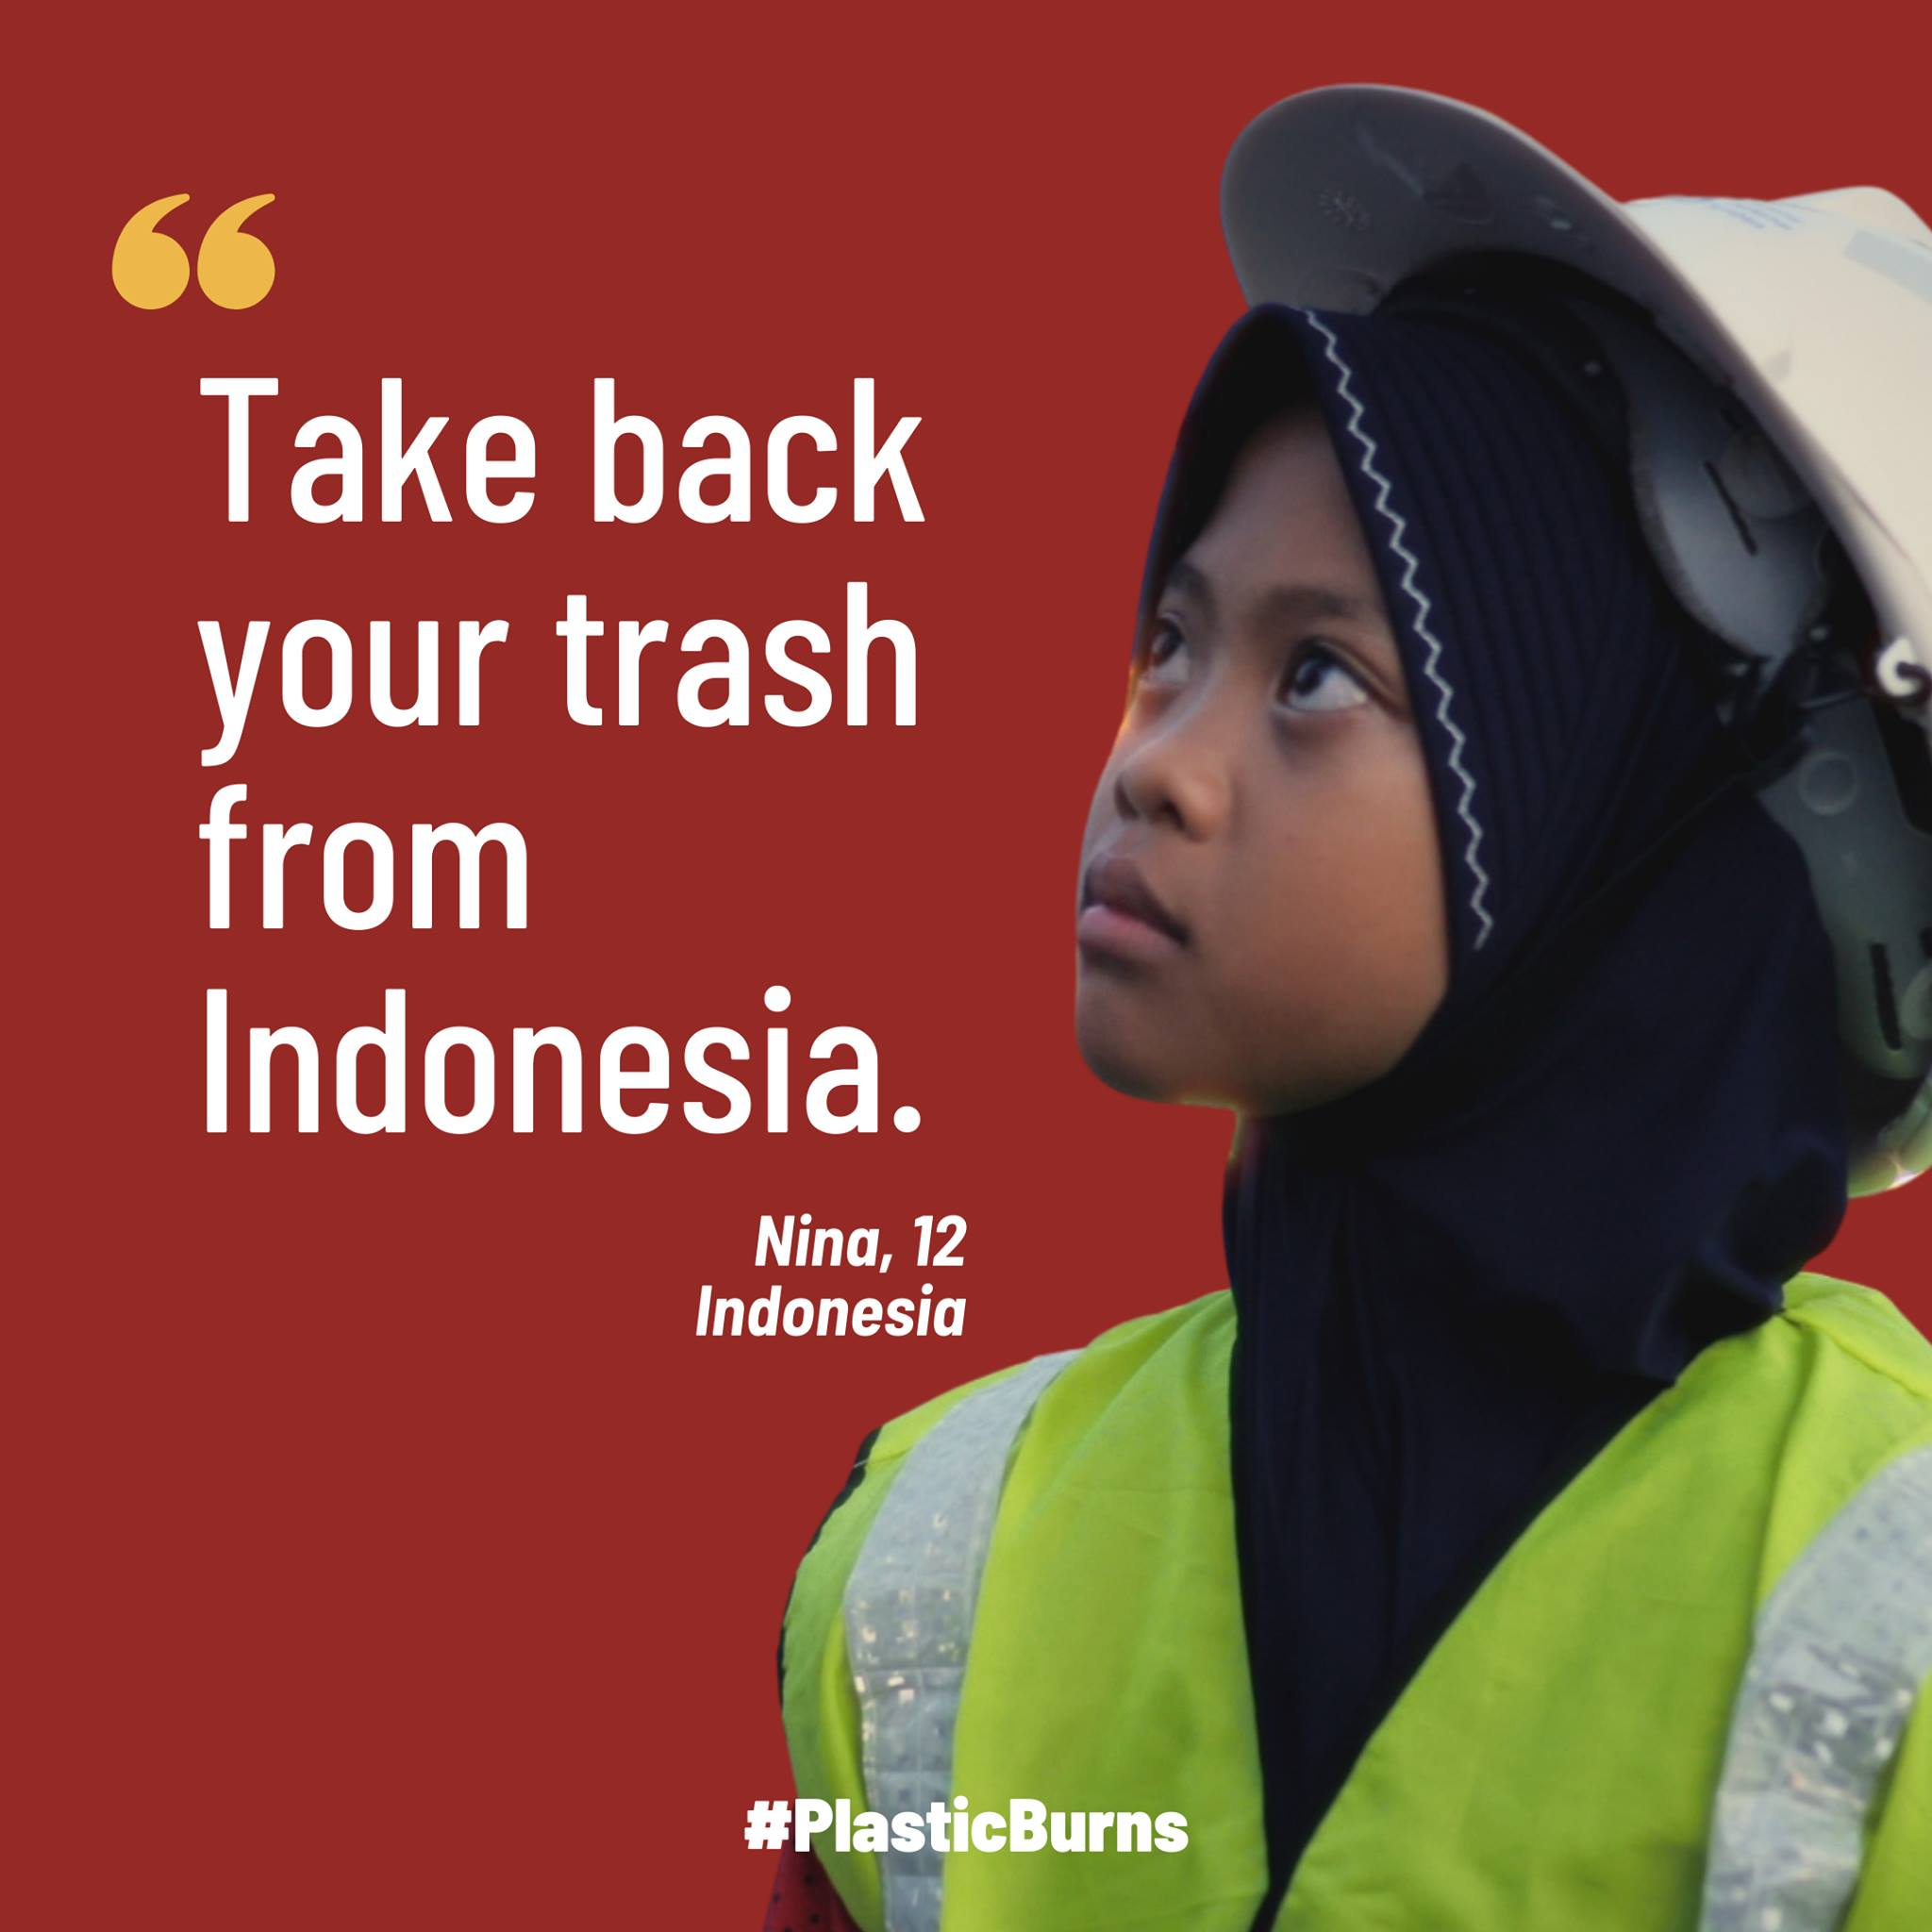 Nina quote: take back your trash from Indonesia